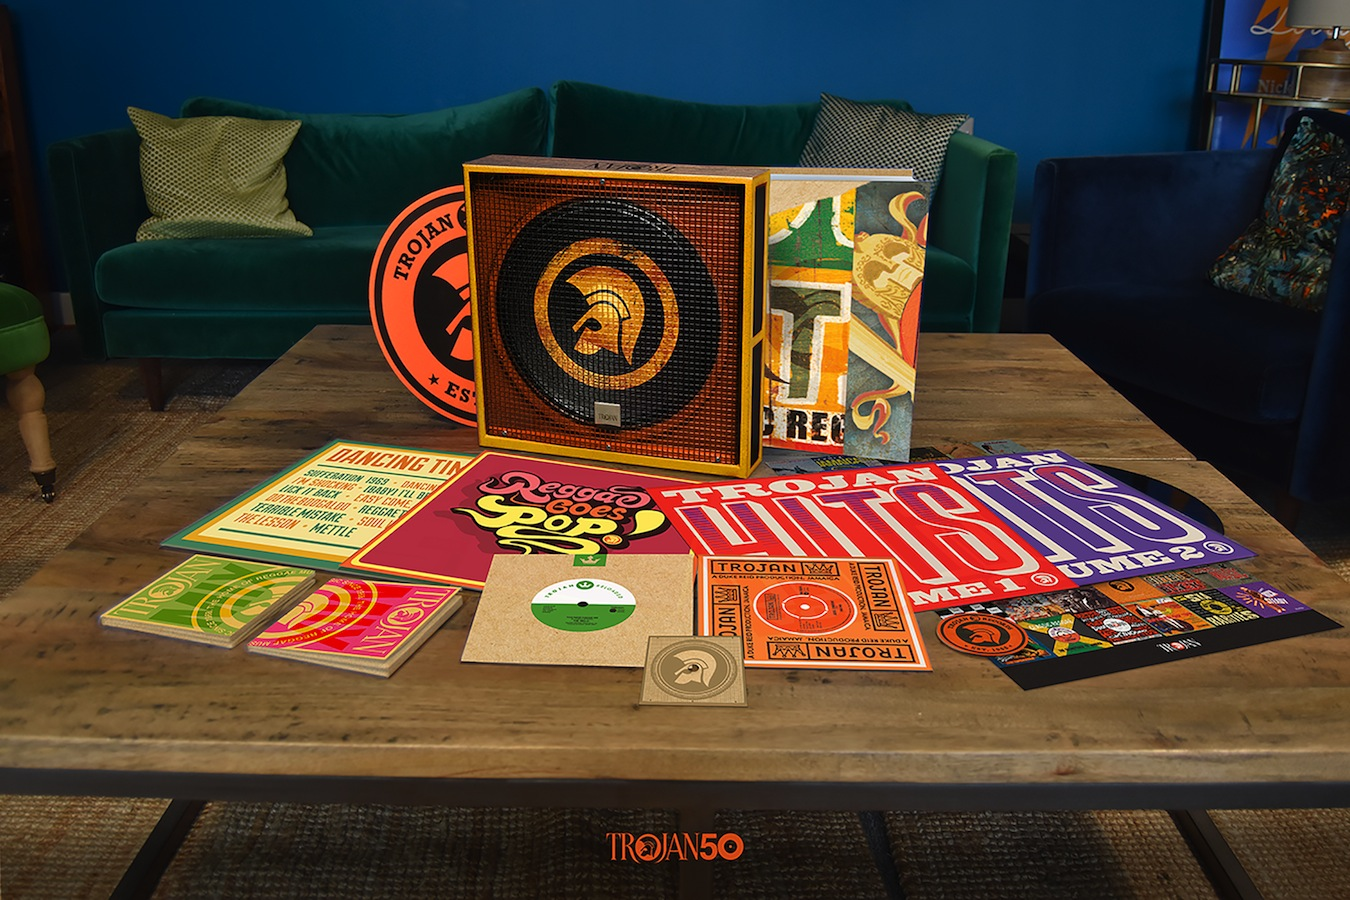 Trojan 50th anniversary box set